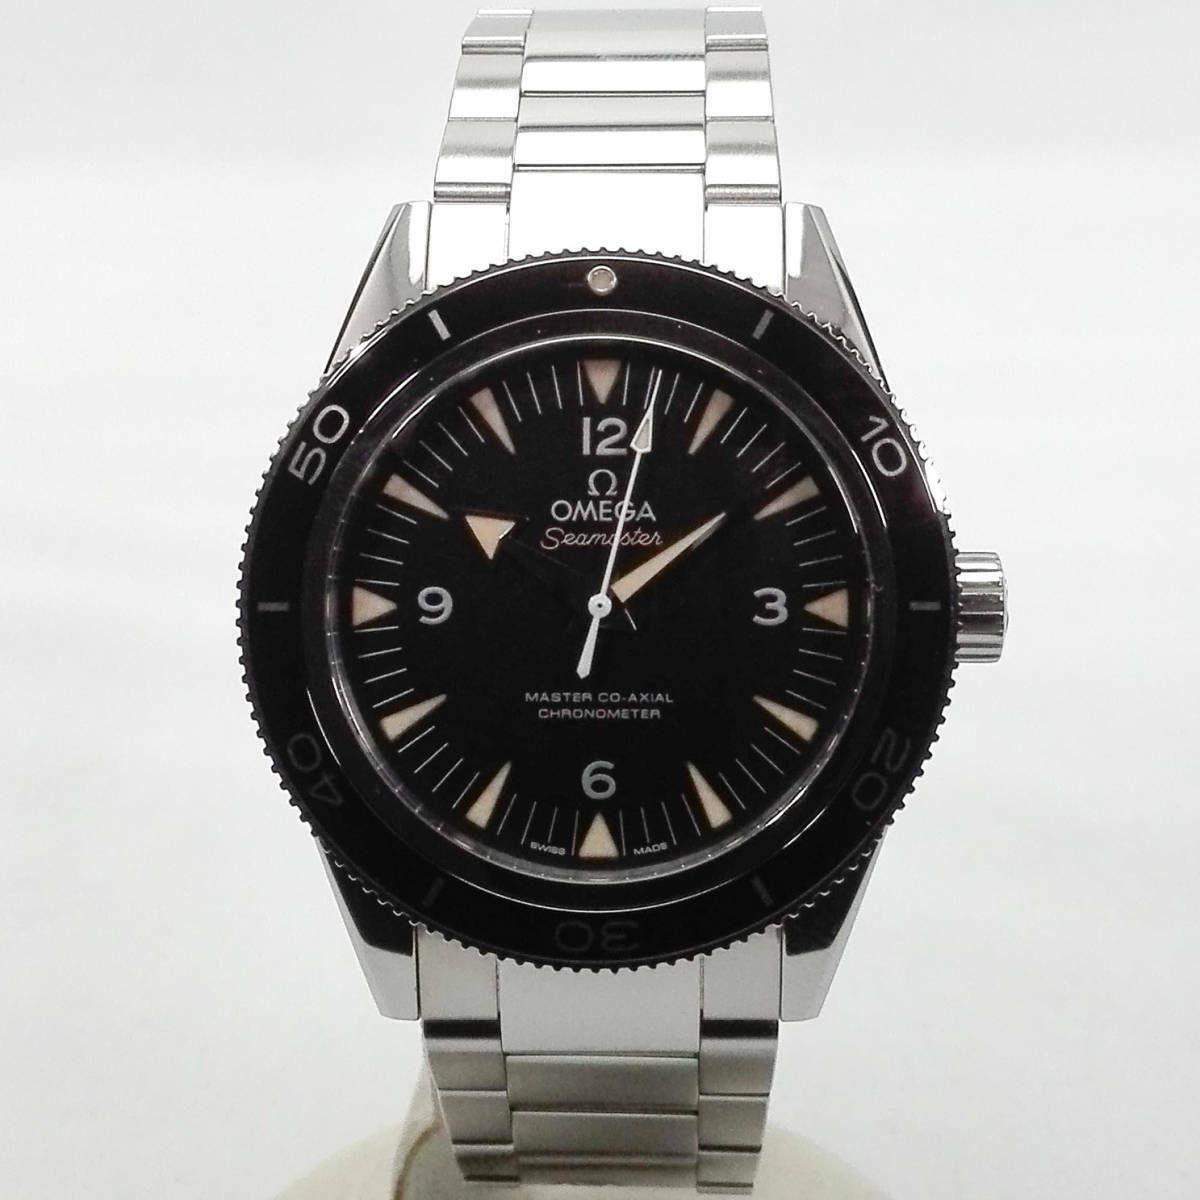 Omega Seamaster 300 master co-axial 23330412101001 automatic self-winding watch